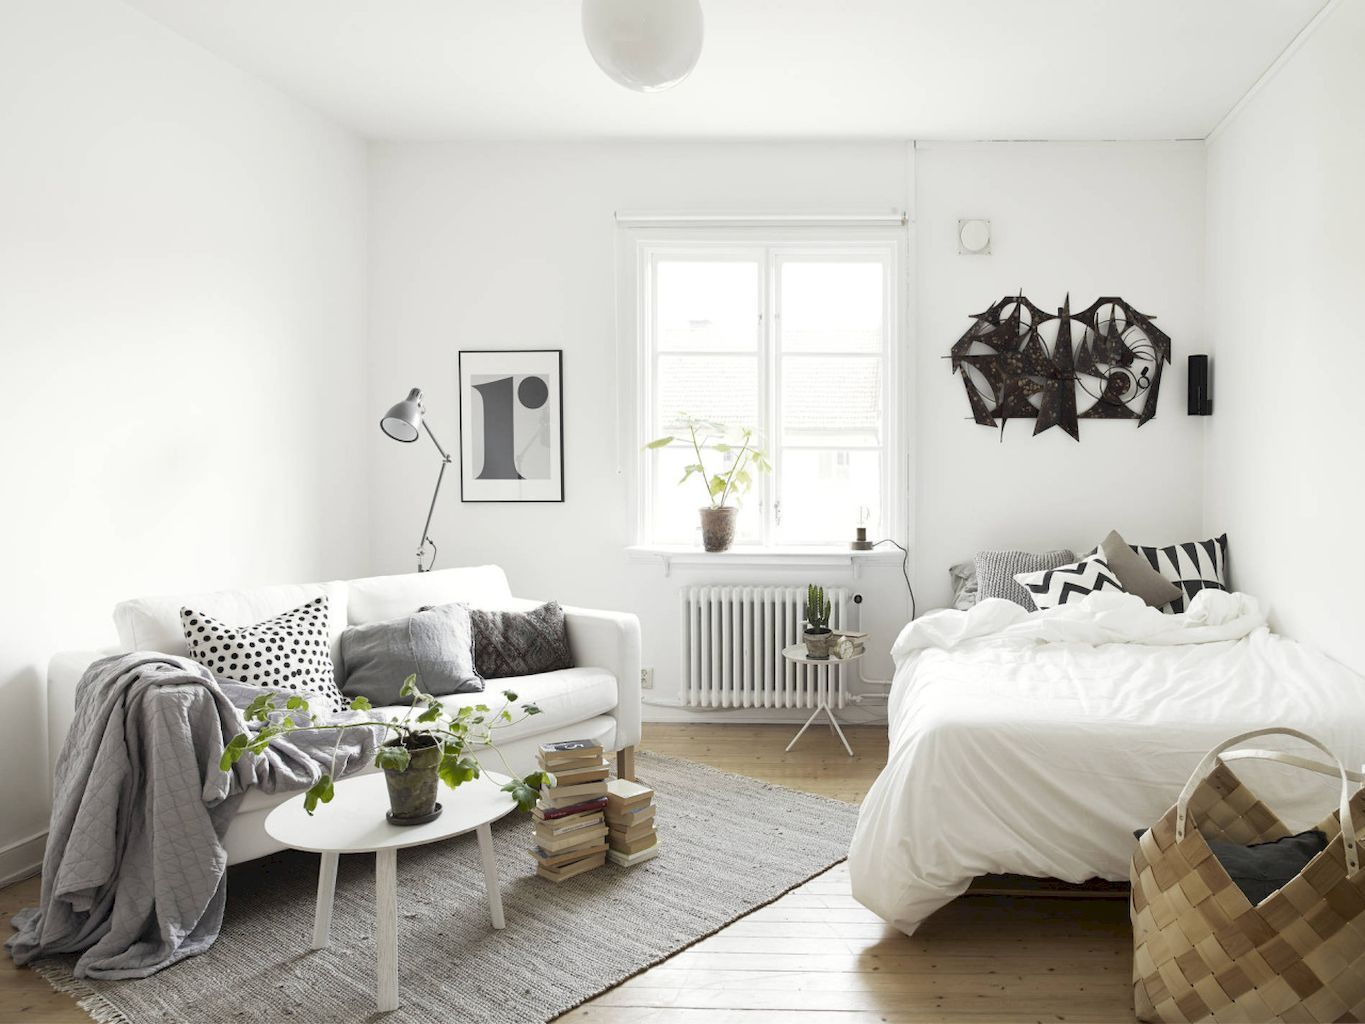 Pin by Amy Hope on Small Spaces Studio apartment